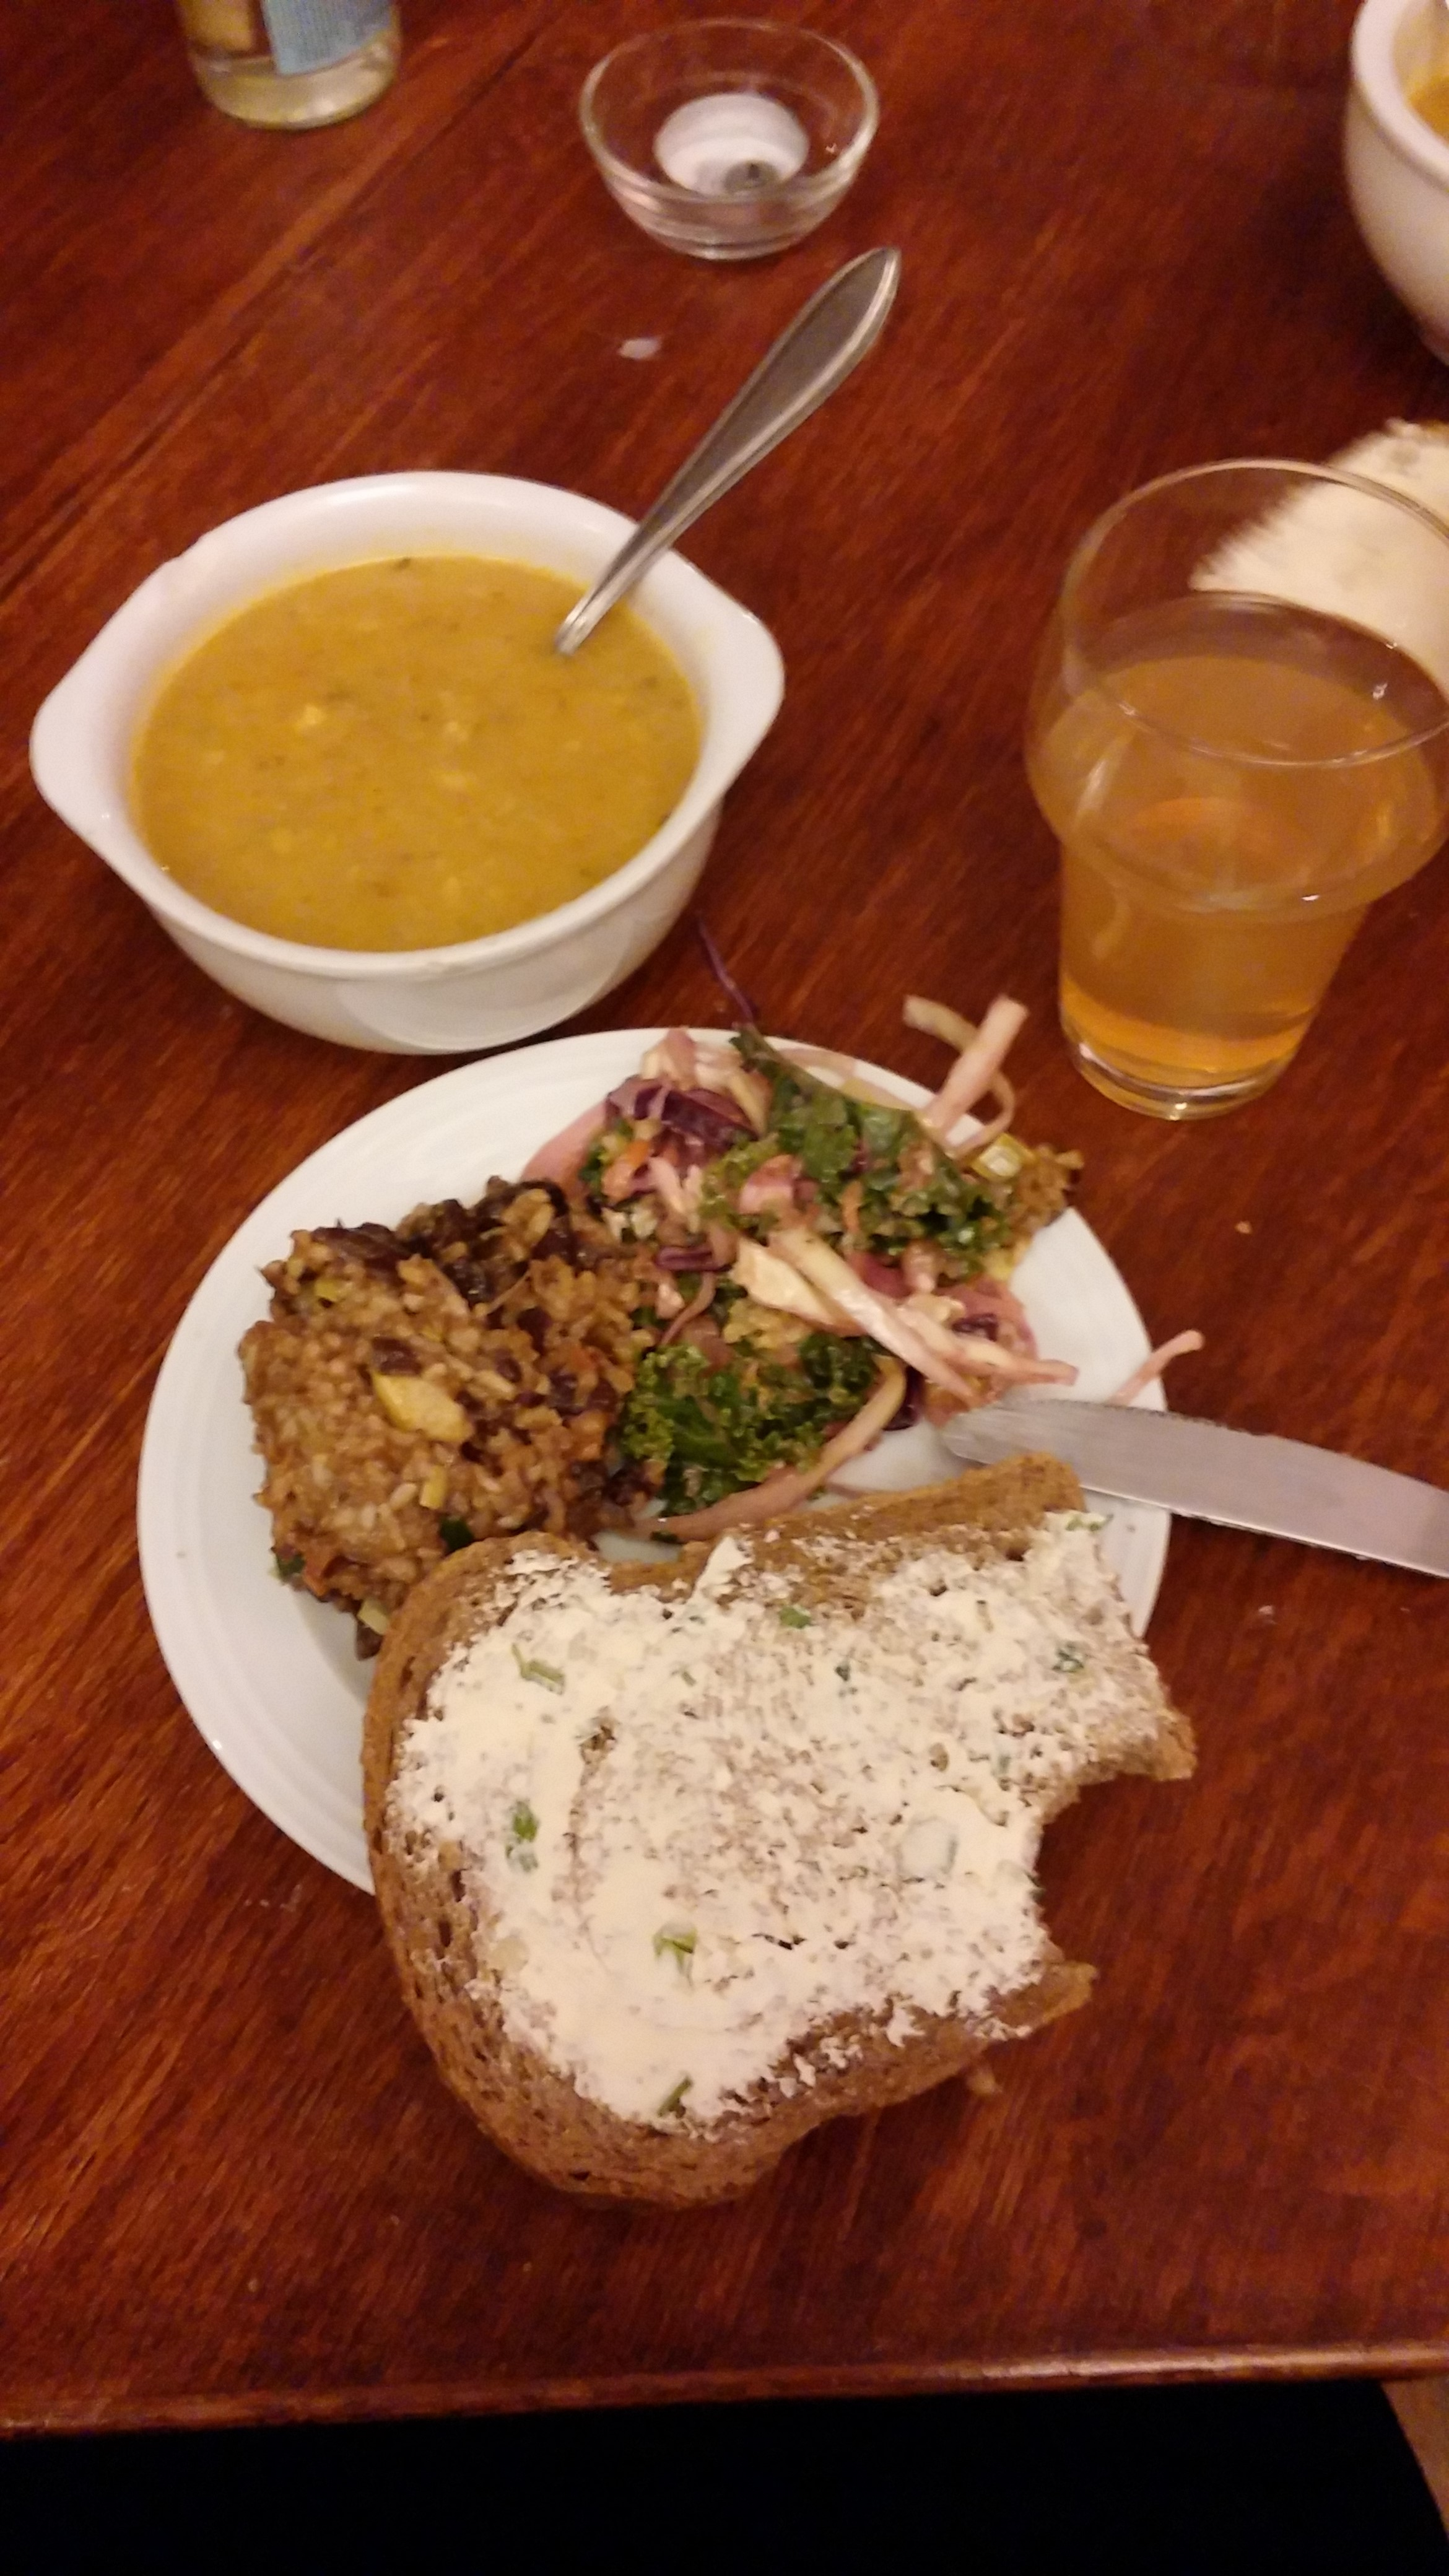 Soep, and other delicious (healthy, vegan) food.